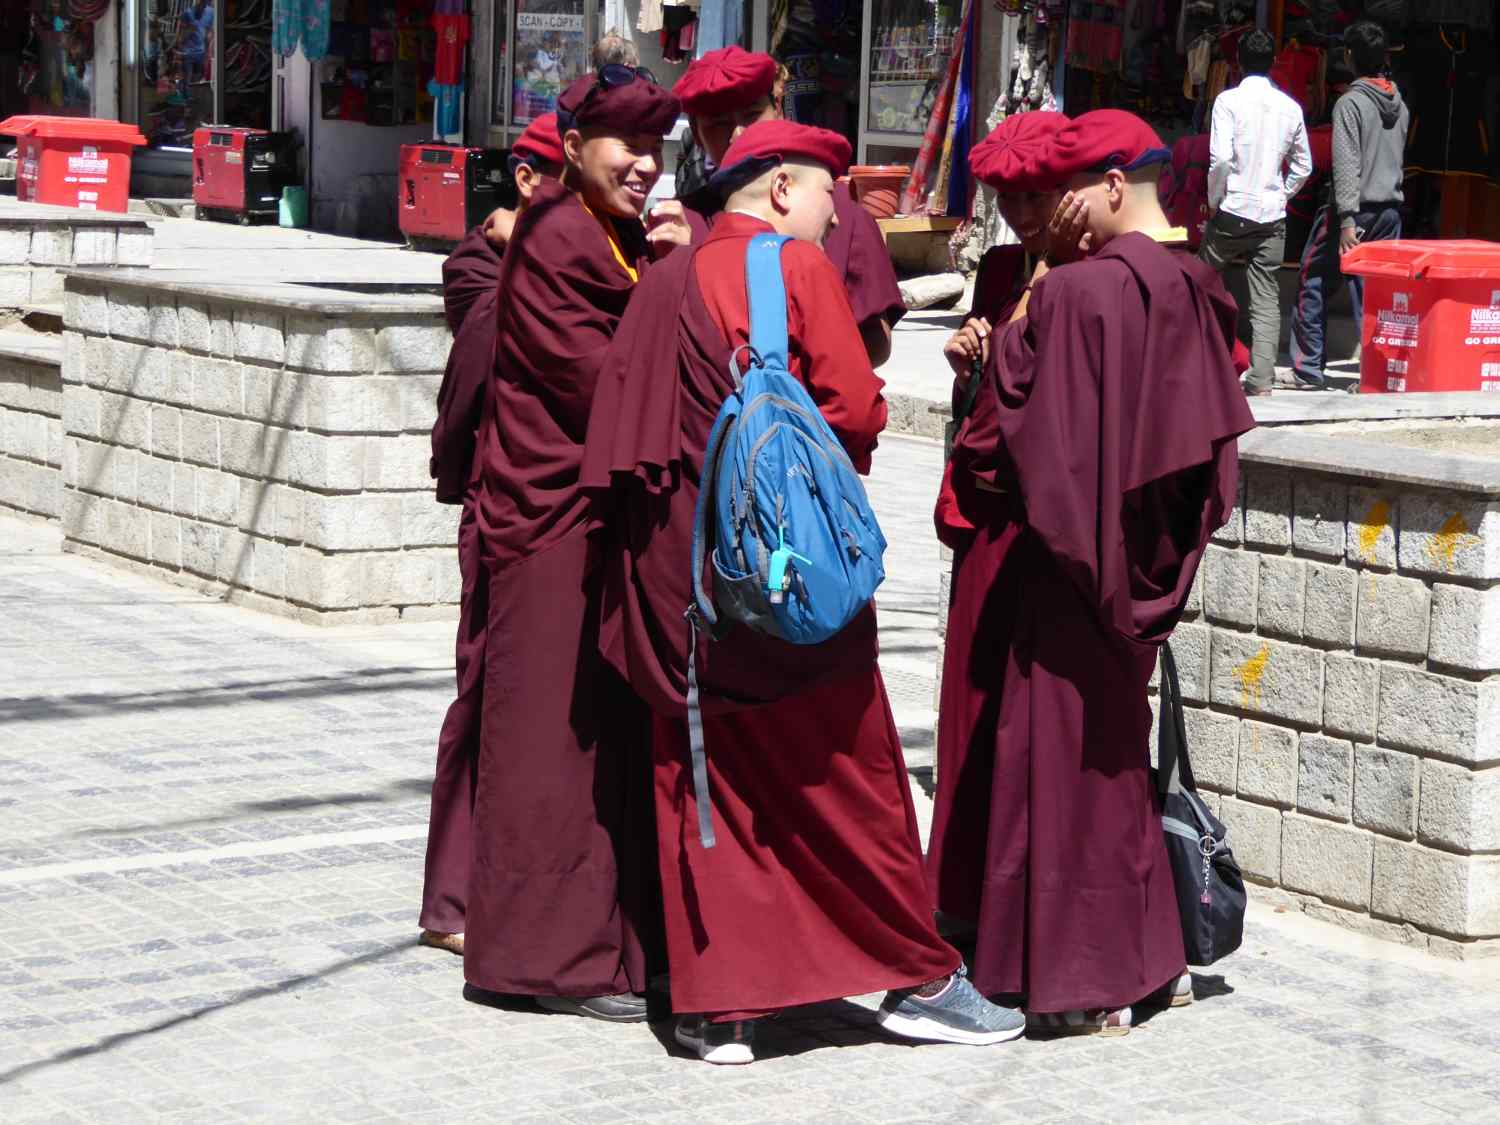 ... and happy monks